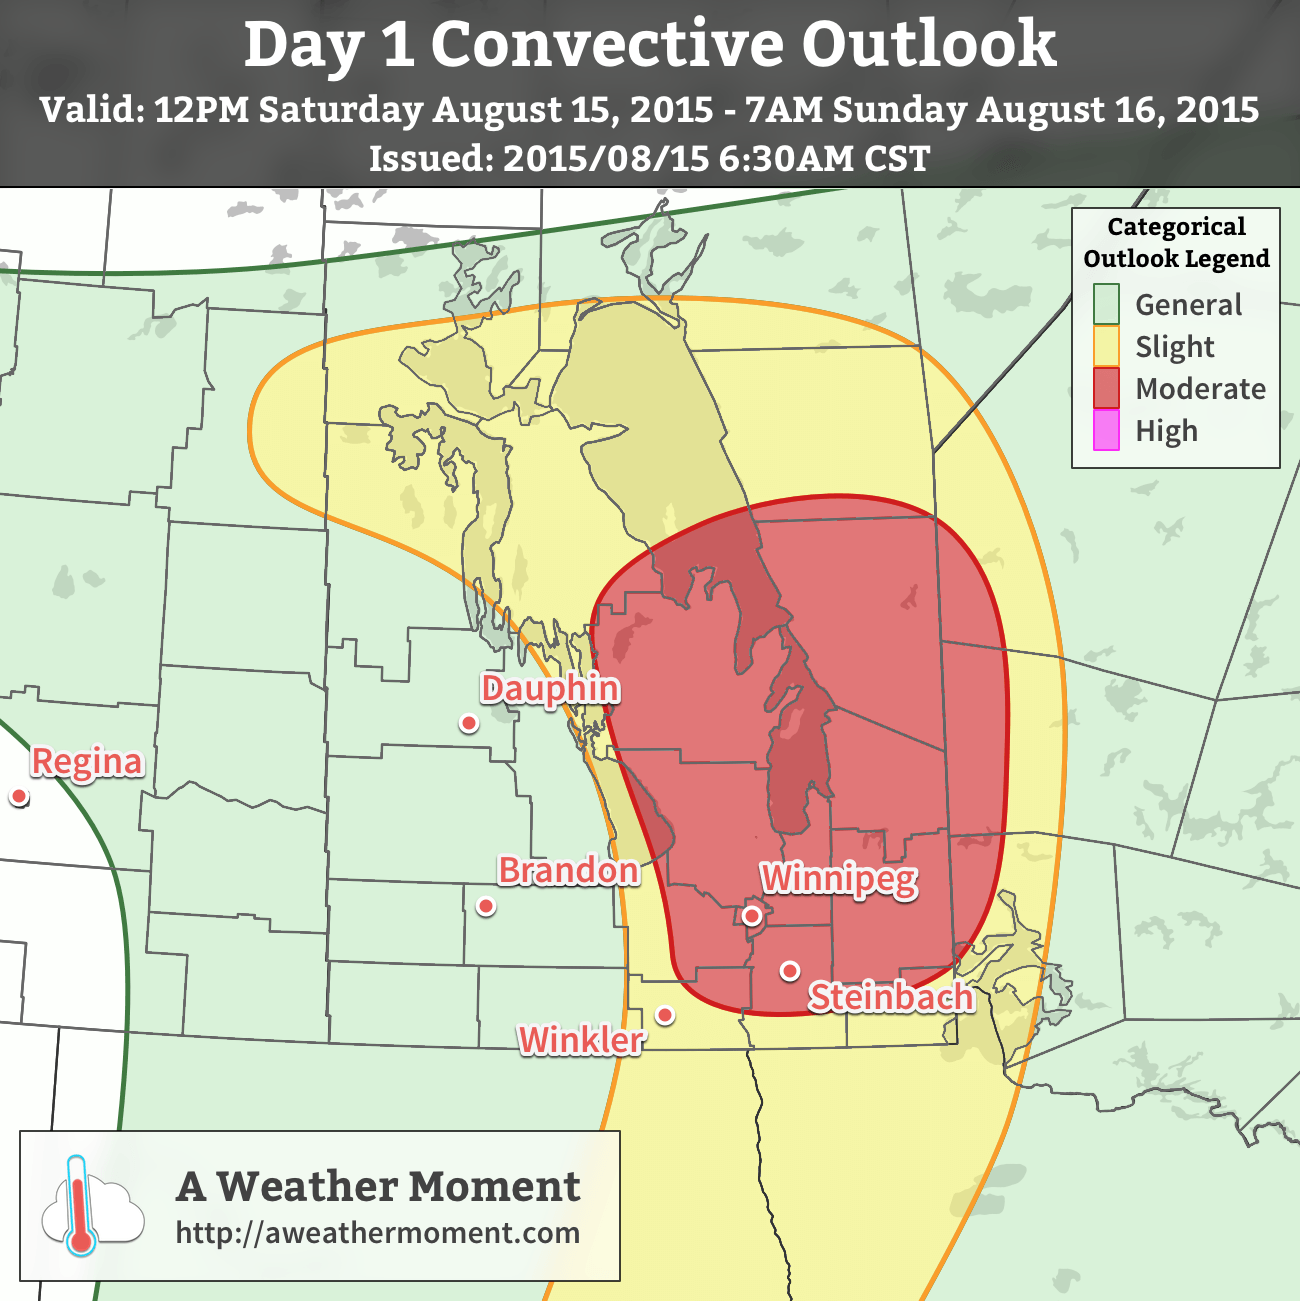 AWM Day 1 Convective Outlook for August 12, 2015